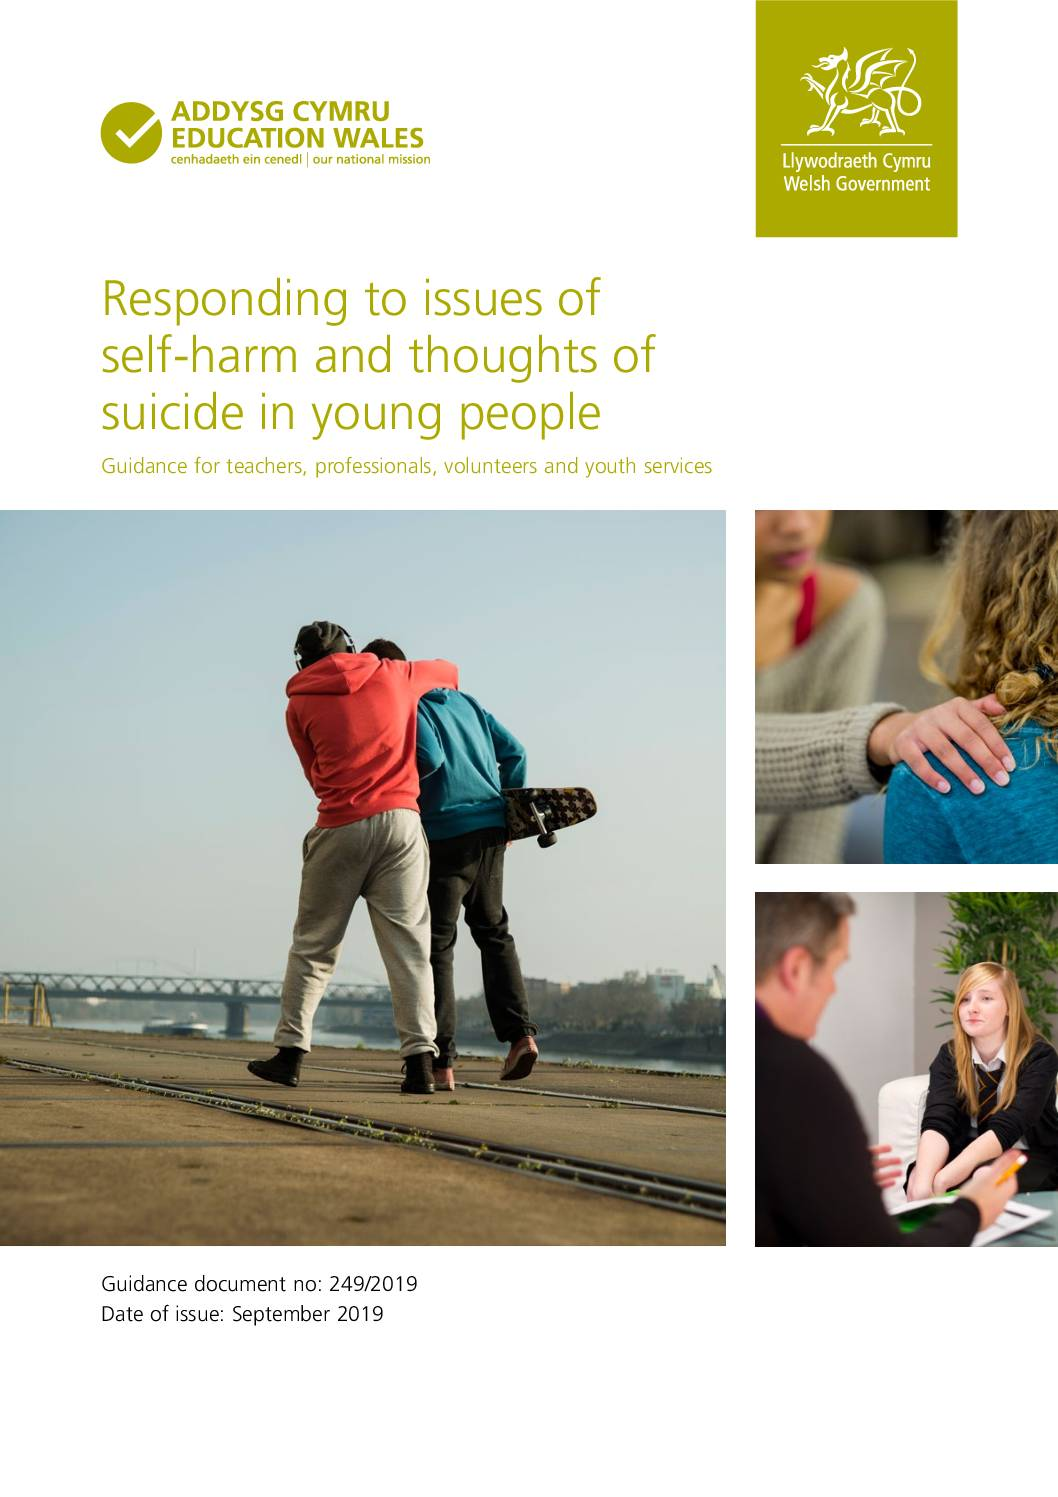 Responding to issues of self-harm and thoughts of suicide in young people